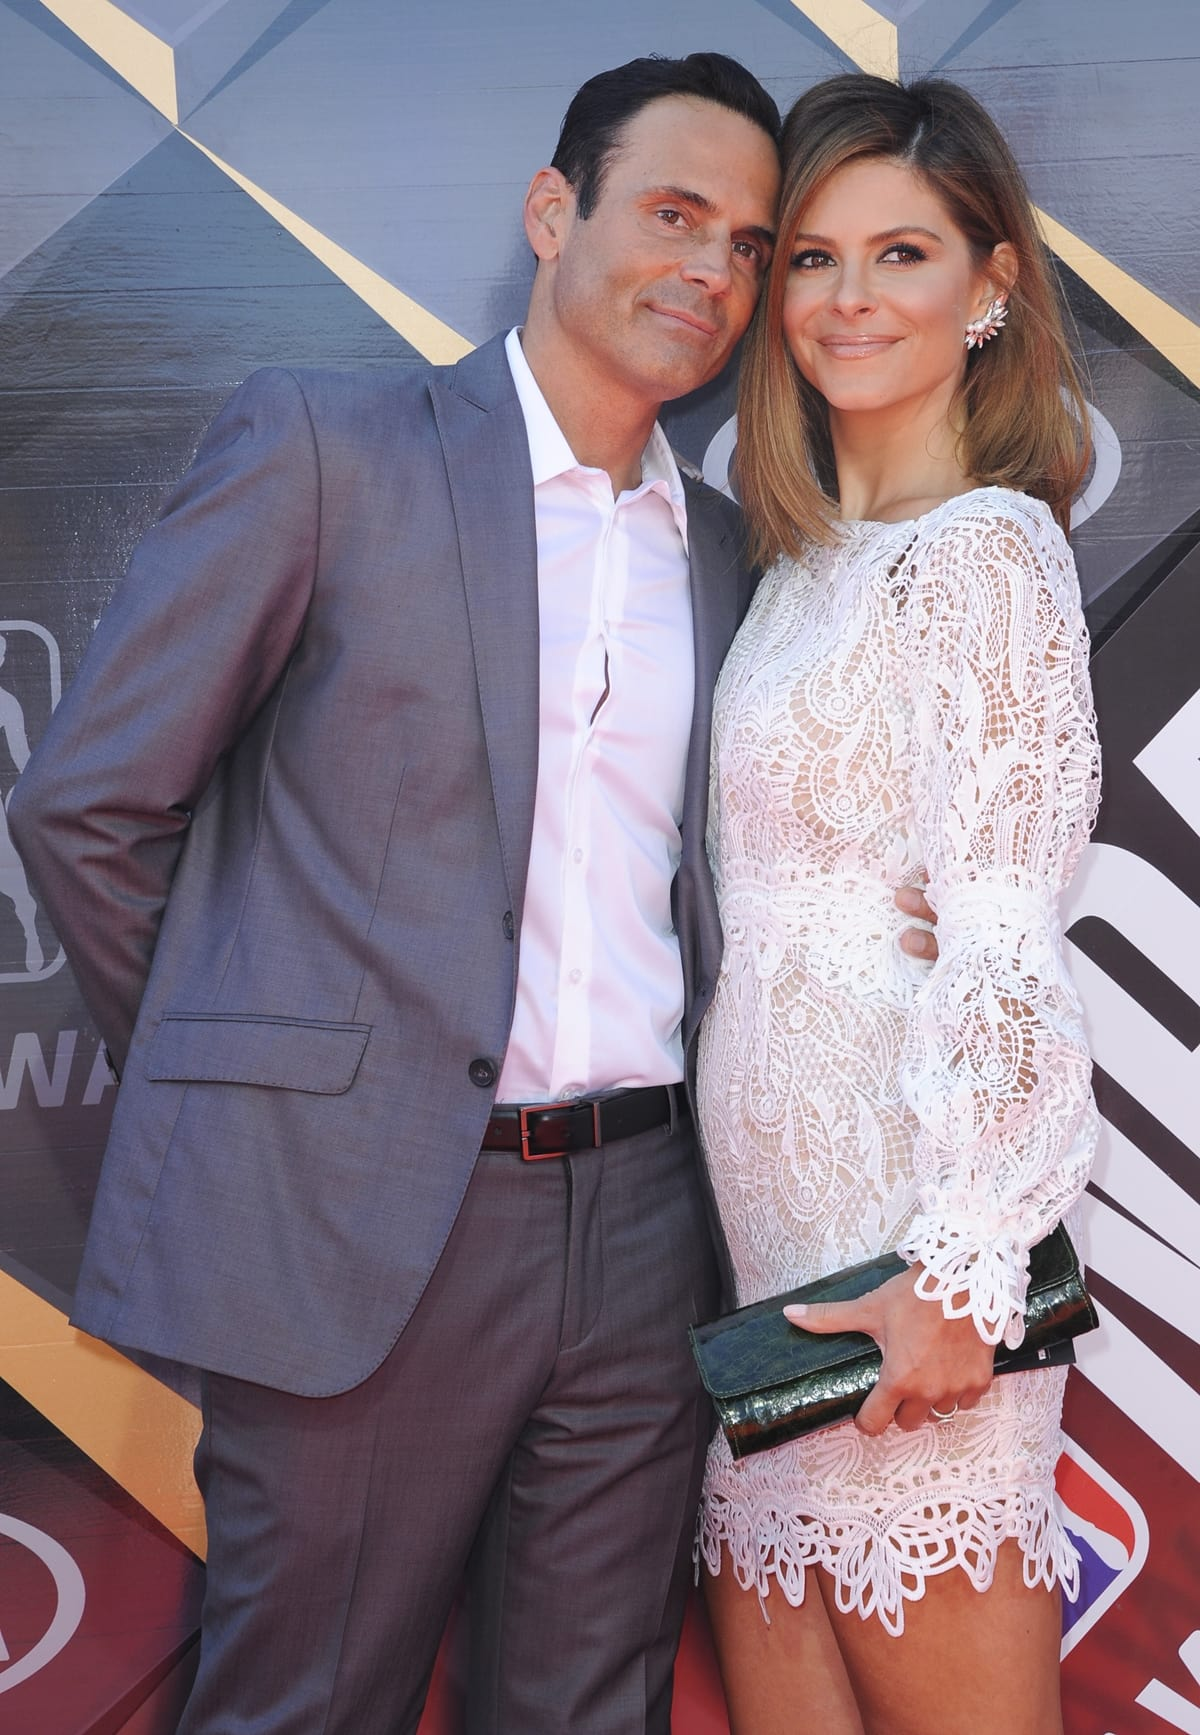 Maria Menounos and Keven Undergaro married on New Year's Eve on December 31, 2017, in the middle of Times Square in New York City